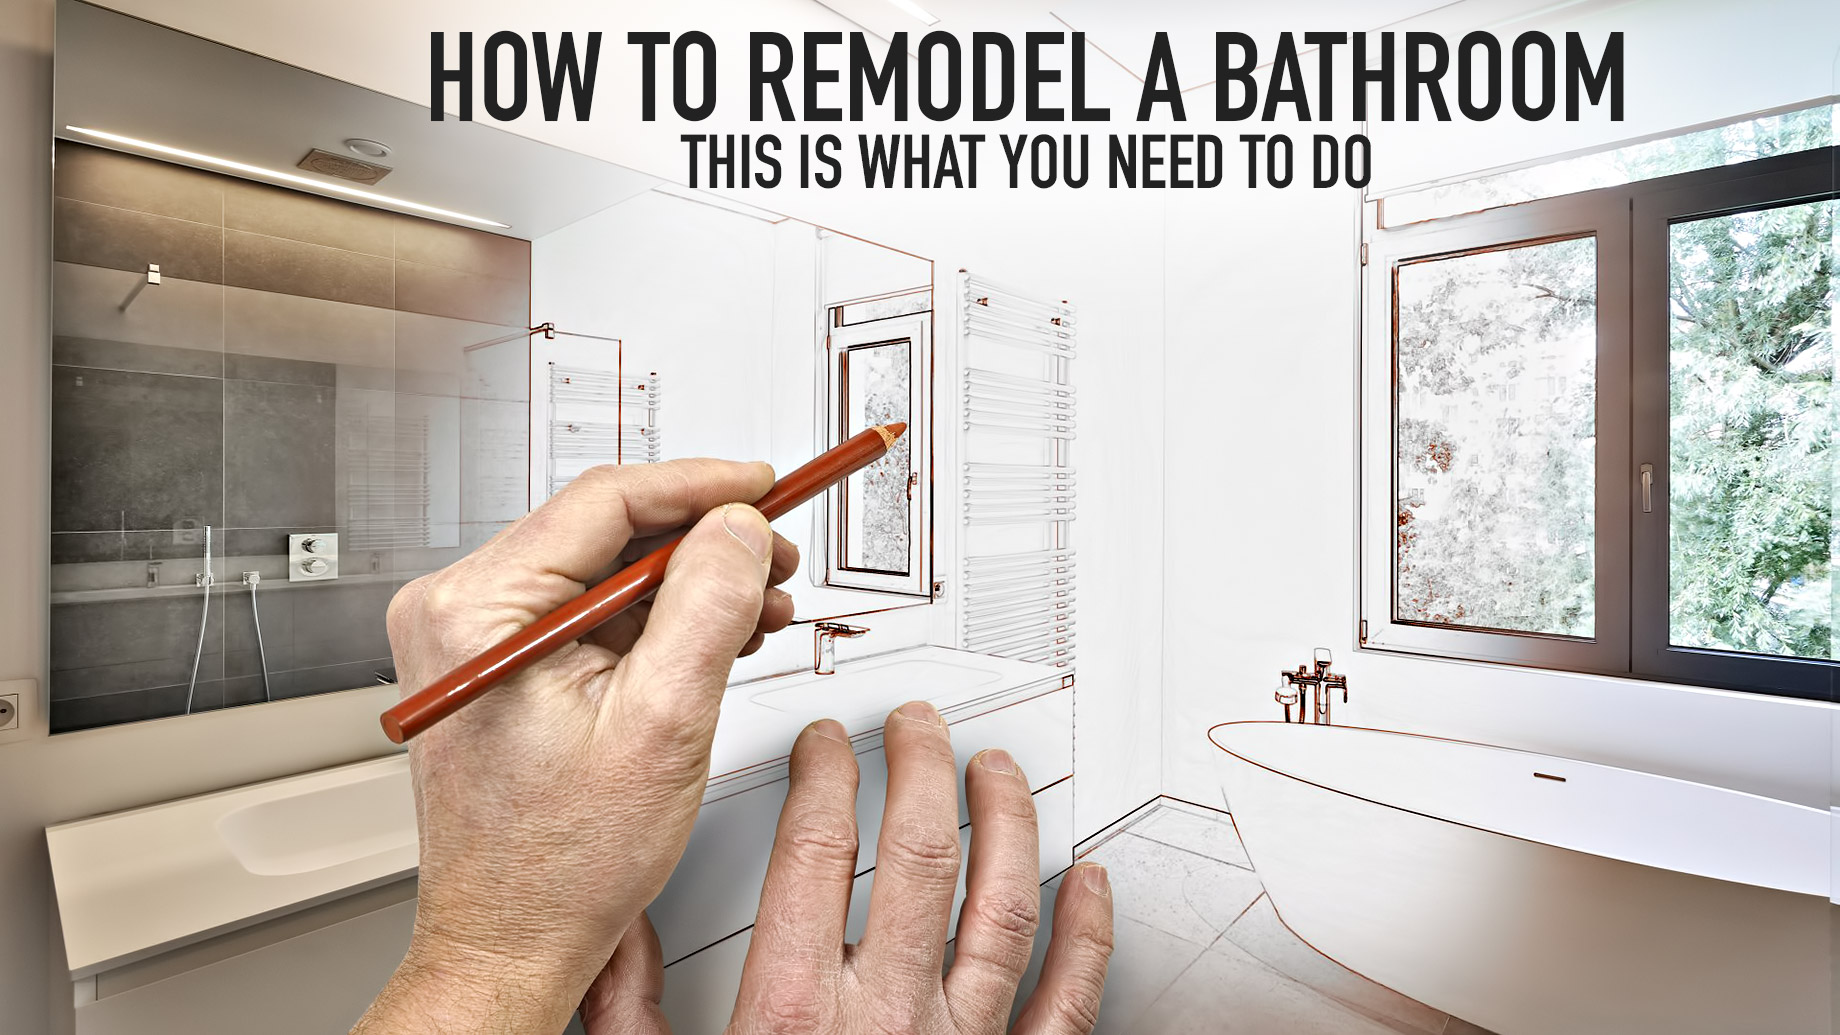 How To Remodel A Bathroom - This Is What You Need To Do